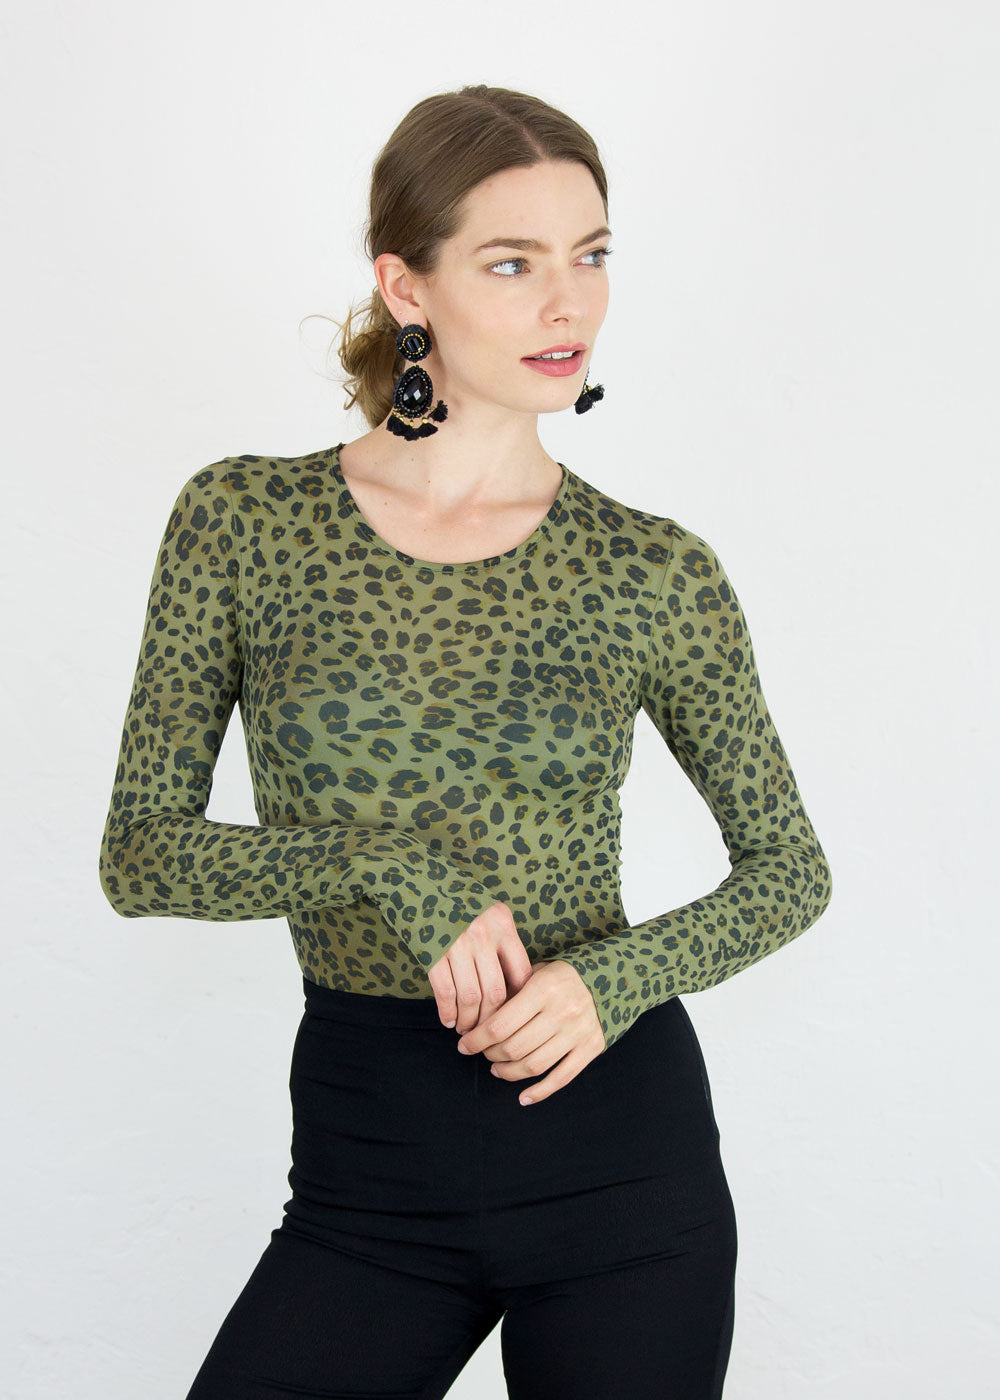 Baby Leopard Crew Neck Top